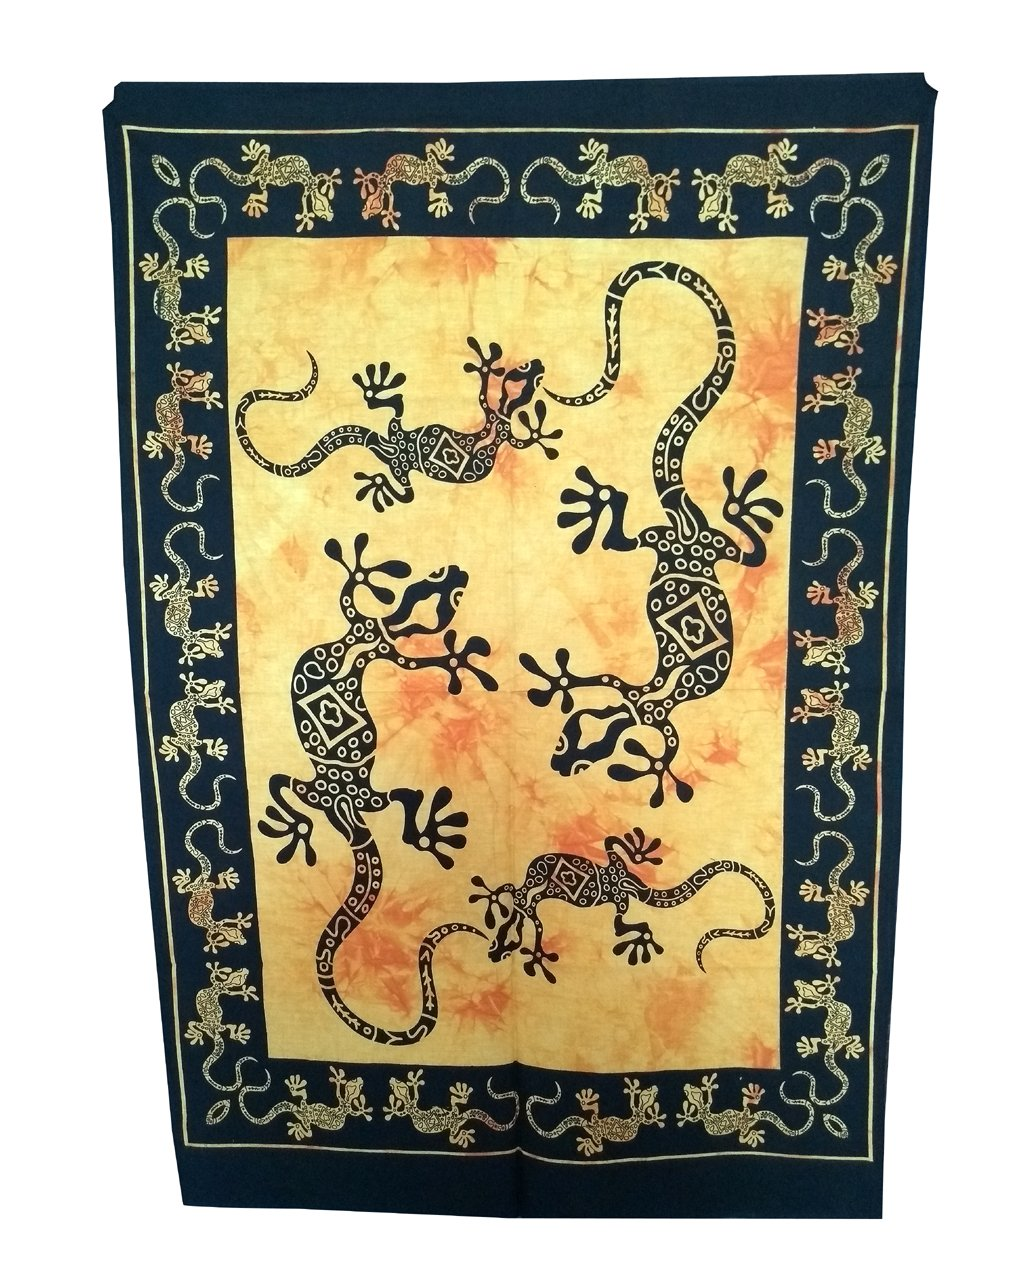 Shubhlaxmifashion Lizard Small Tapestry Poster Size 42x30 Designer Wall Hanging Cotton Ethinc Sheet Printed Yellow Tie /& Dye